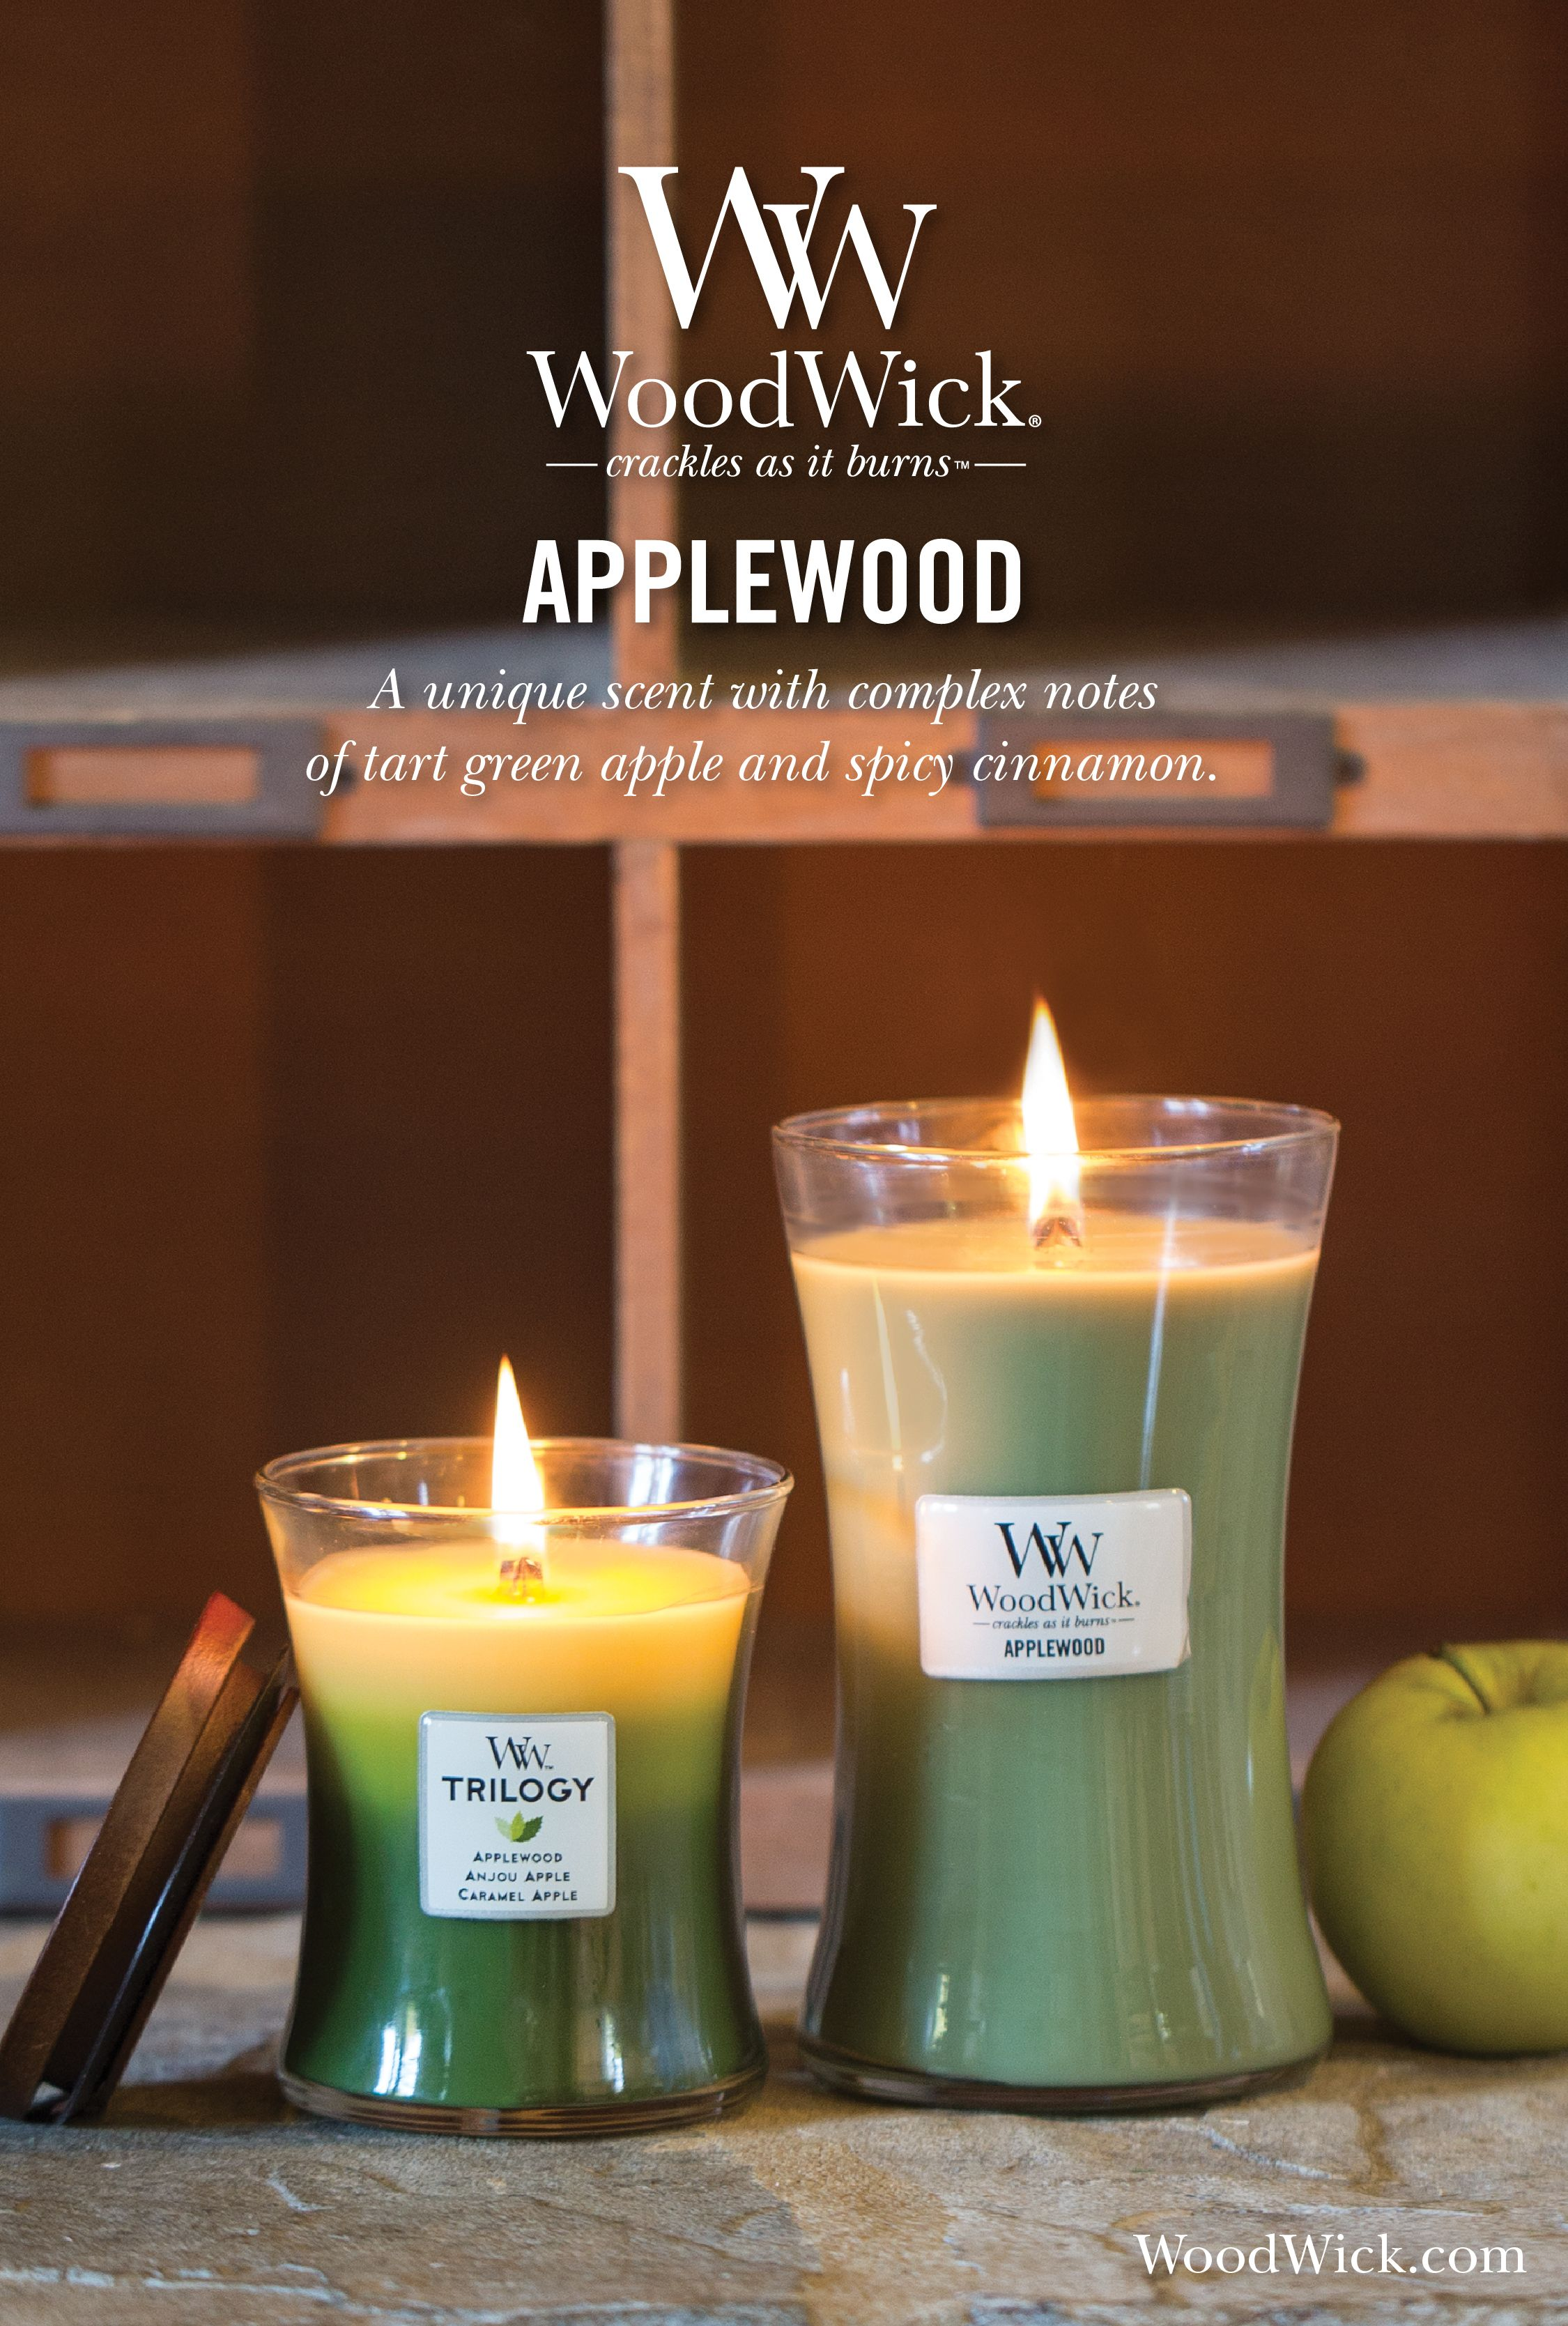 A Unique Scent With Complex Notes Of Tart Green Apple And Spicy